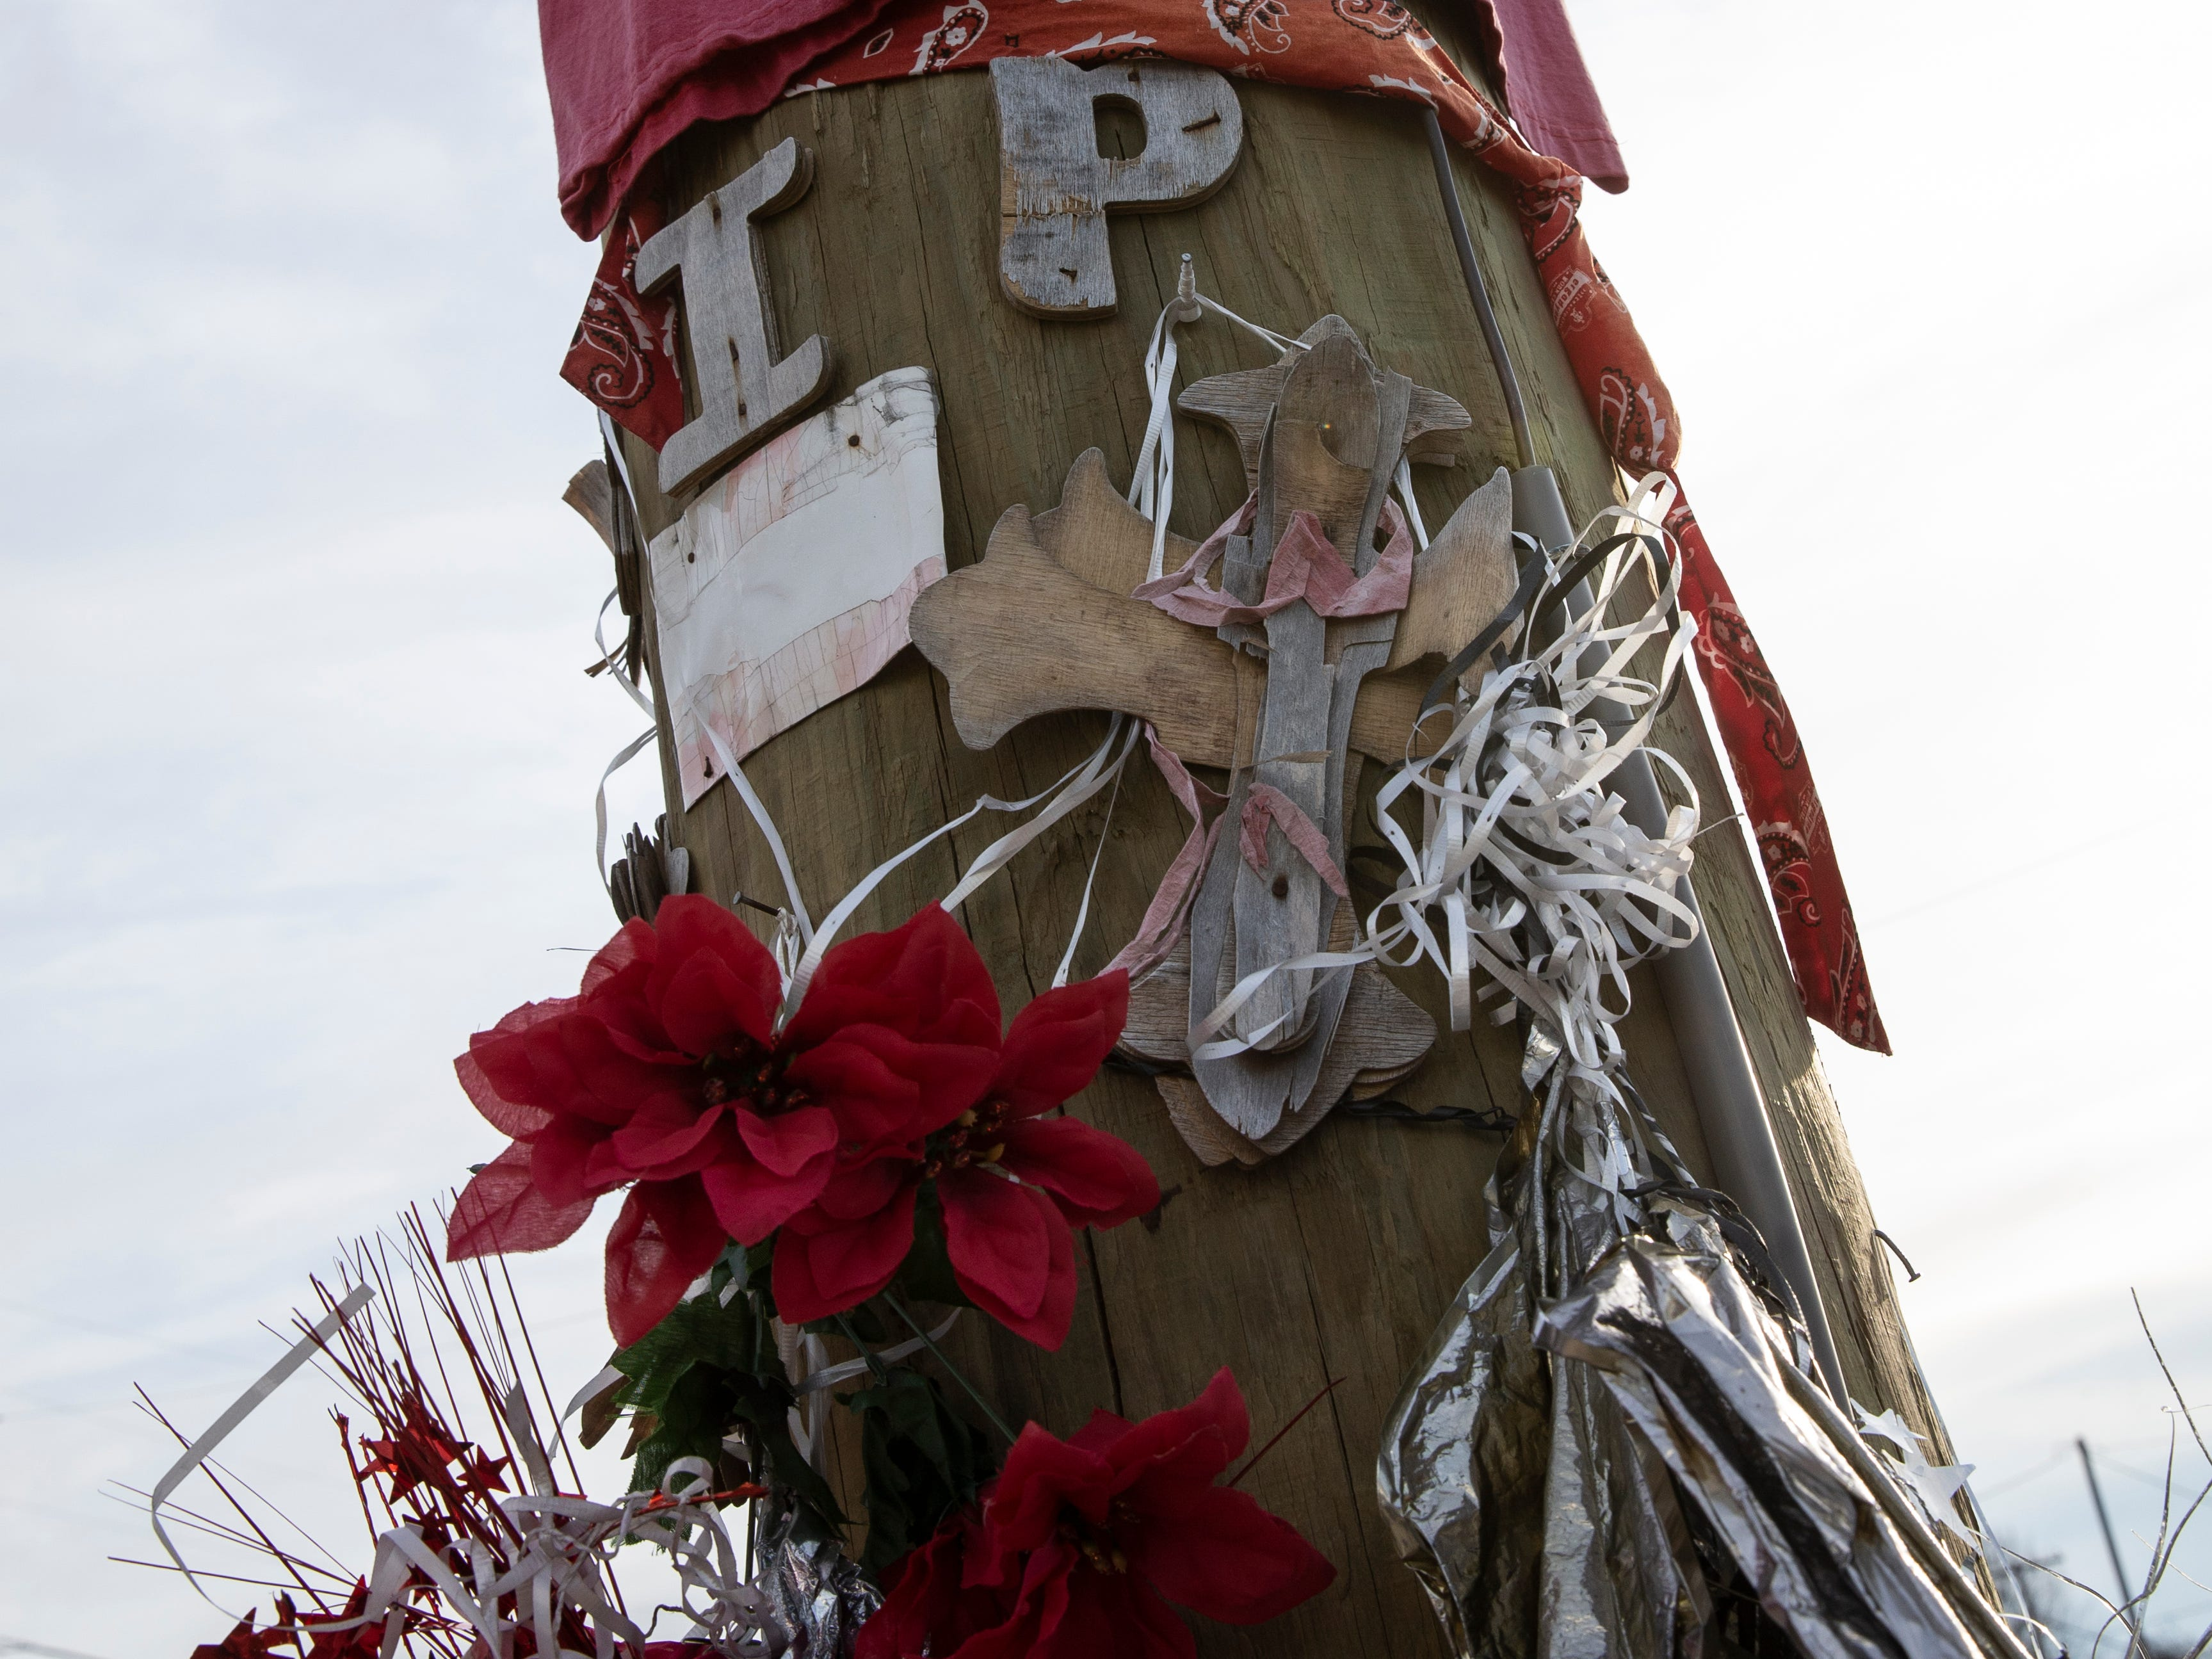 An aging memorial to the late Desmond Williams, 20, whose body was found in the middle of Dixie Highway at Gaulbert Avenue, in December of 2010.  April 2, 2019.